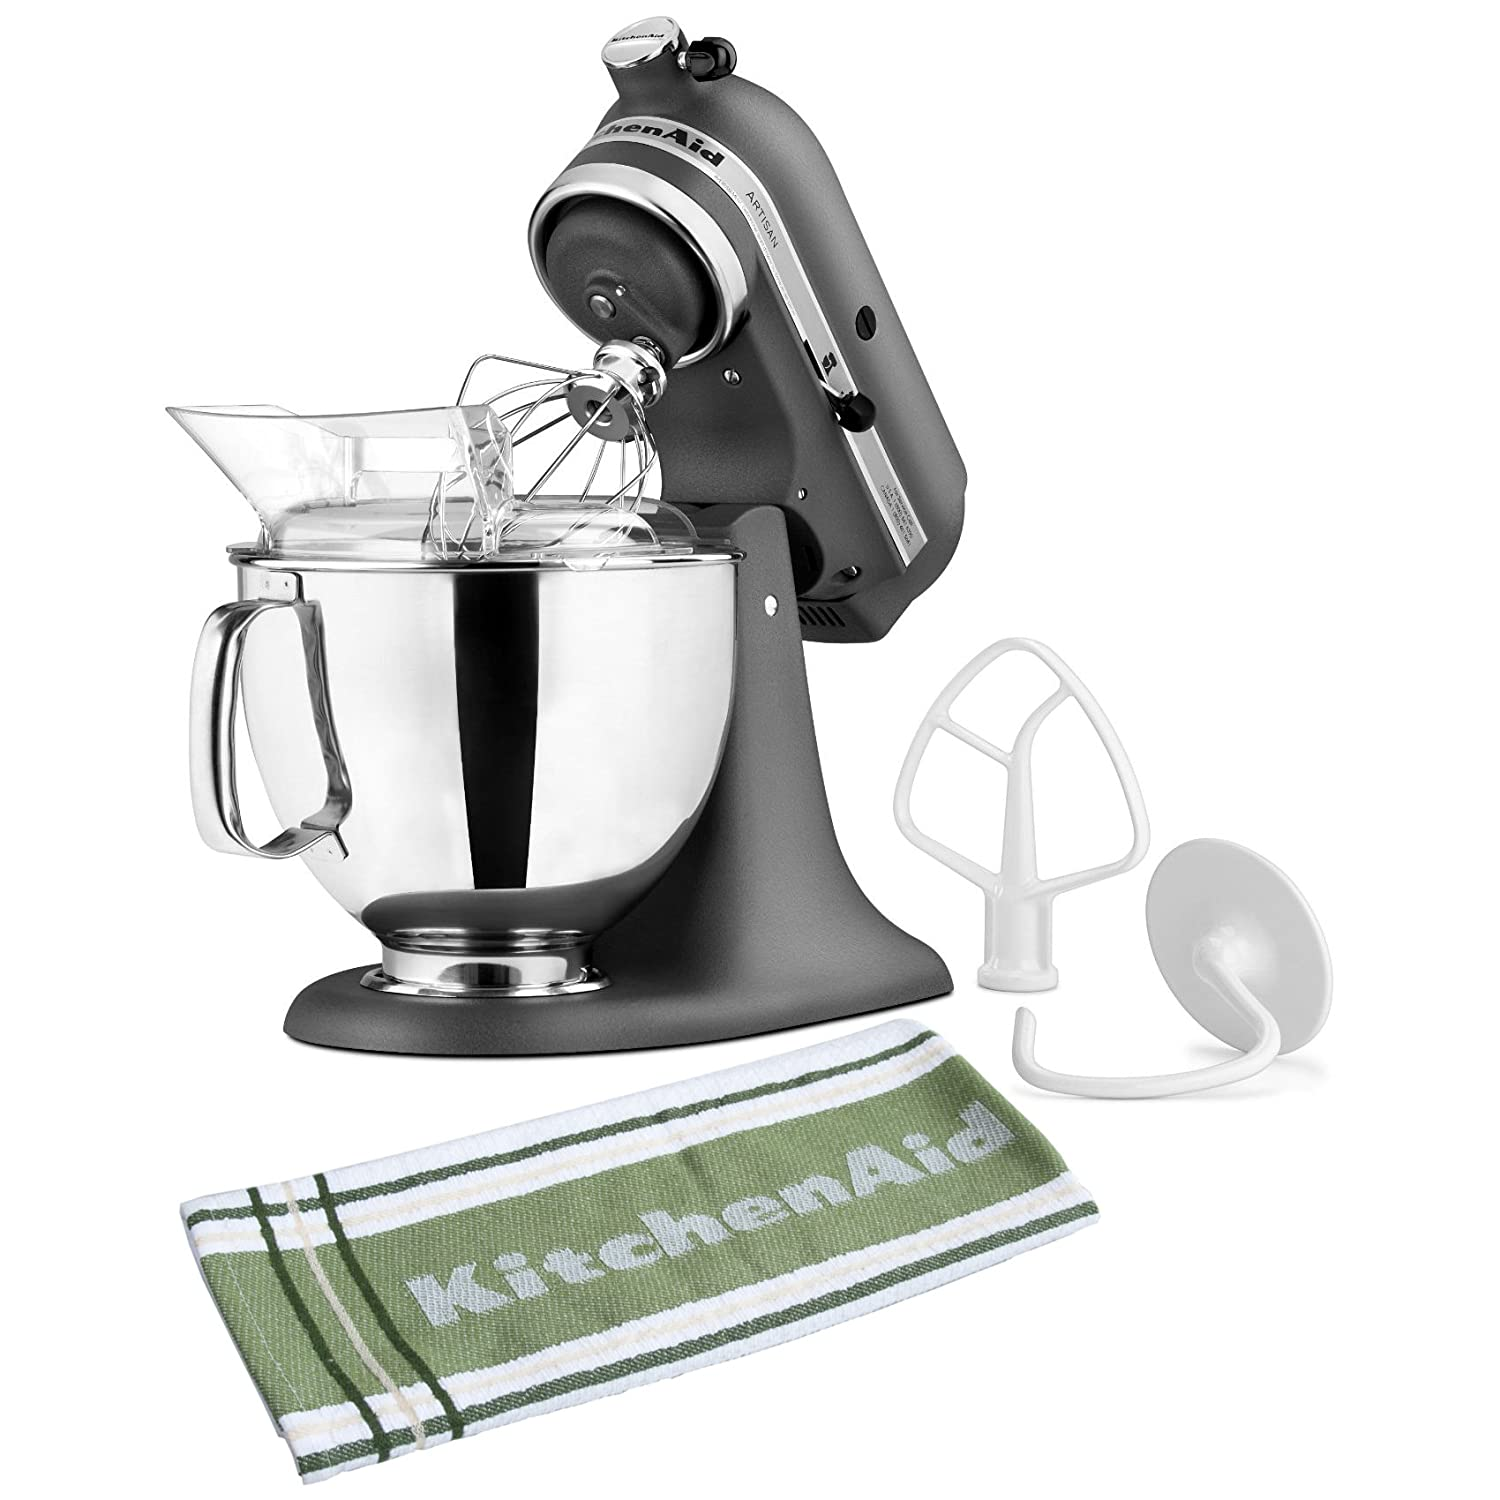 KitchenAid KSM150PSGR Artisan Series Imperial Grey Stand Mixer with Free 131227/JKT/KT5878 Kitchen Towel